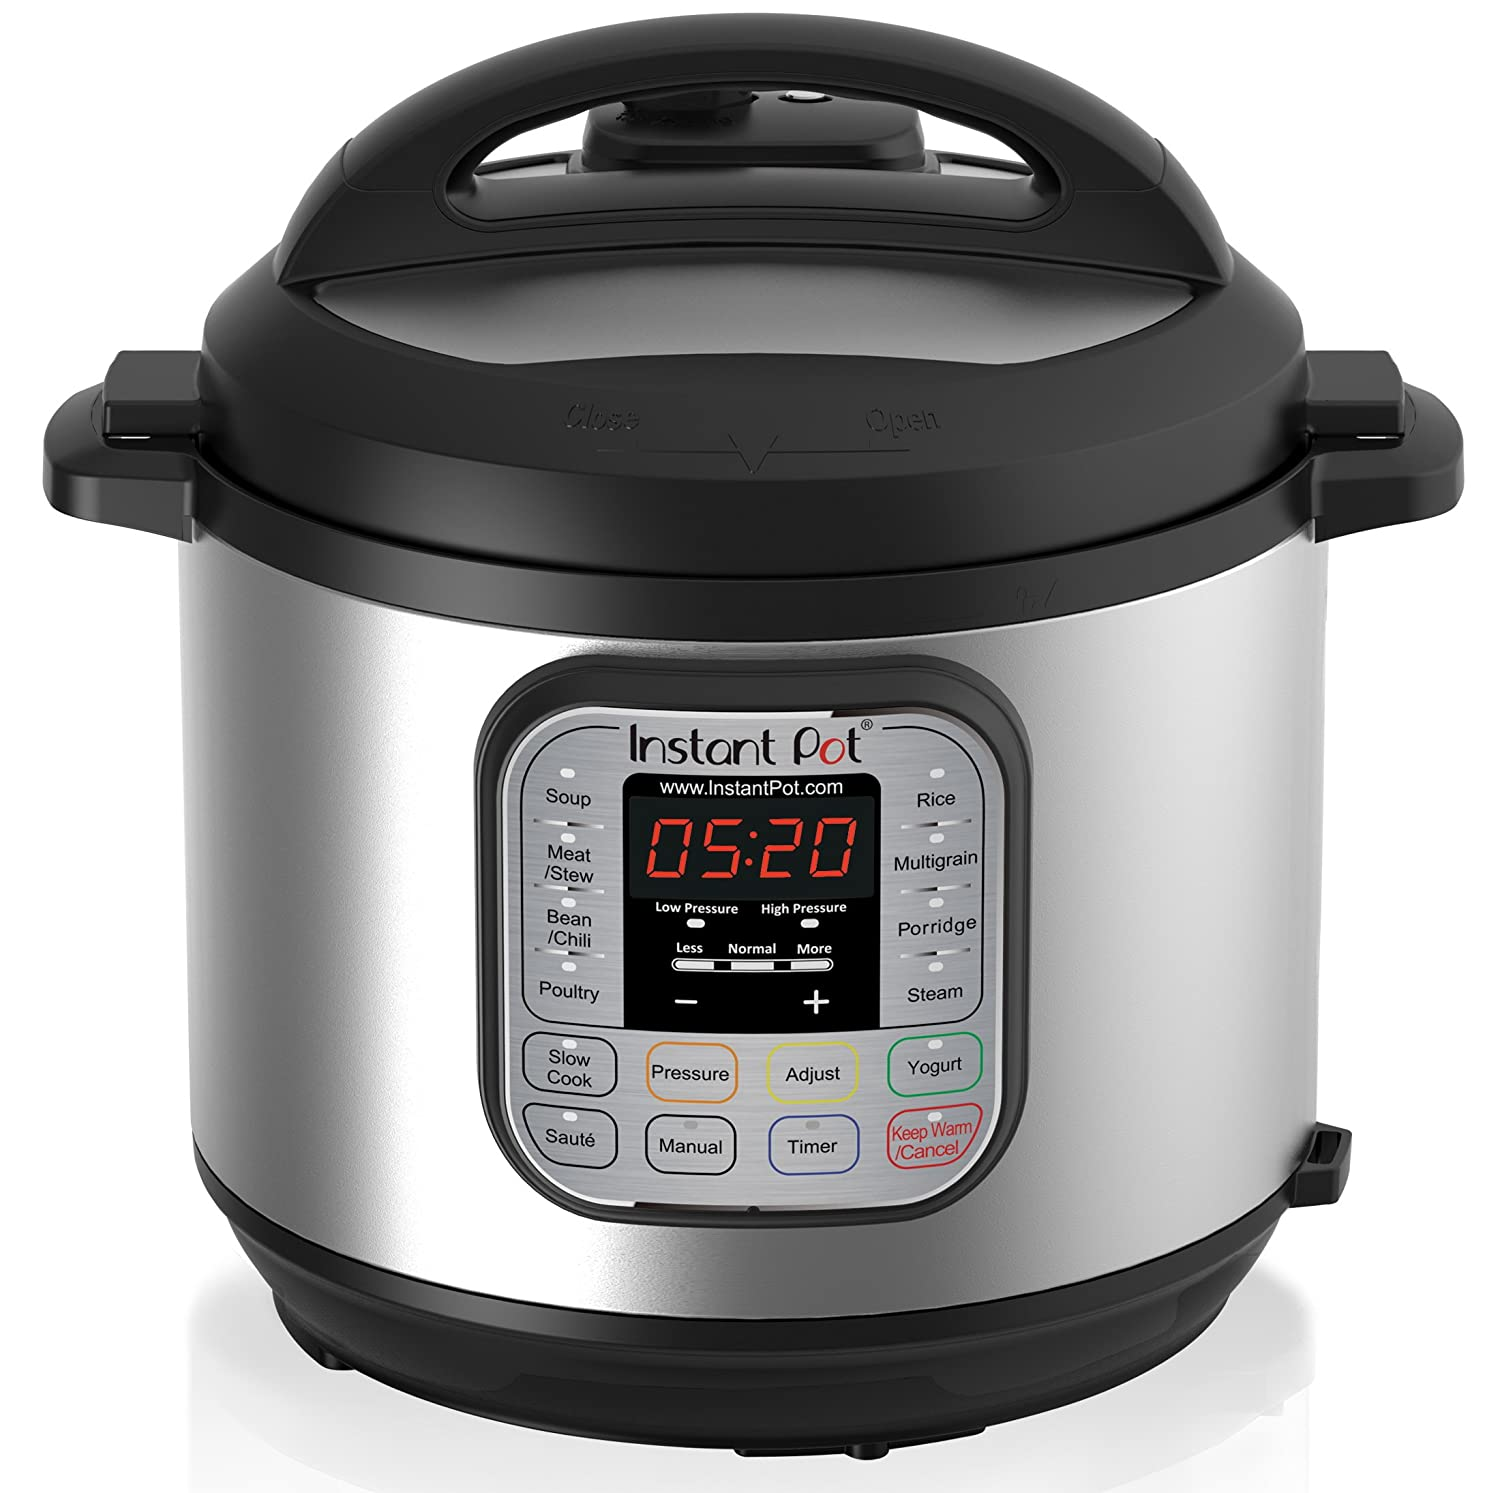 <b>Instant Pot IP-DUO60 7-in-1</b> Programmable Pressure Cooker, 6Qt/1000W, Stainless Steel Cooking Pot and Exterior, Latest 3rd Generation Technology